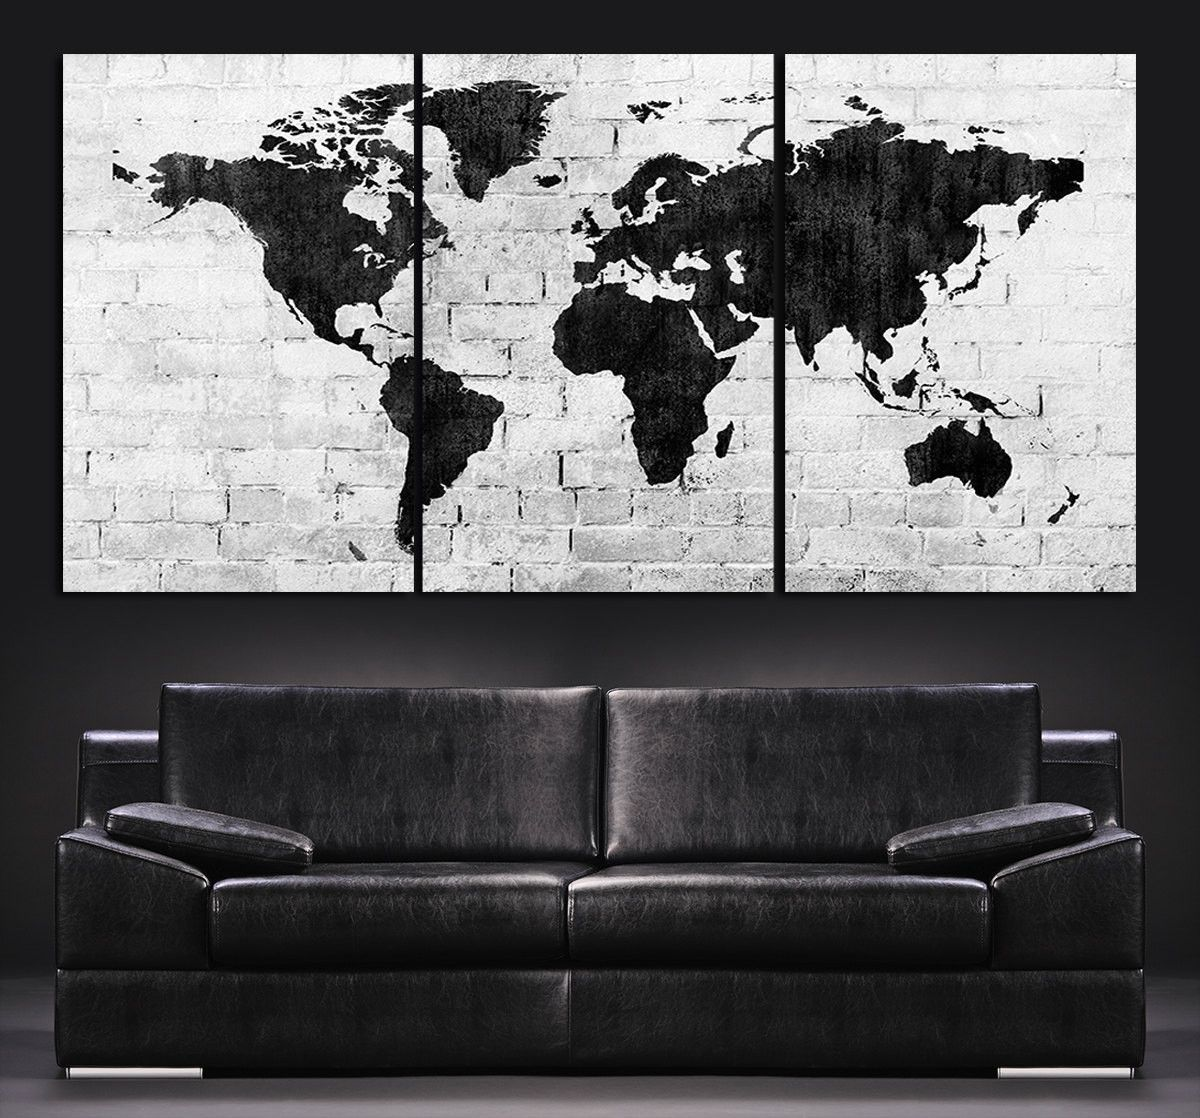 Large wall art world map canvas print contemporary 3 panel large wall art world map canvas print contemporary 3 panel triptych black and white large gumiabroncs Gallery